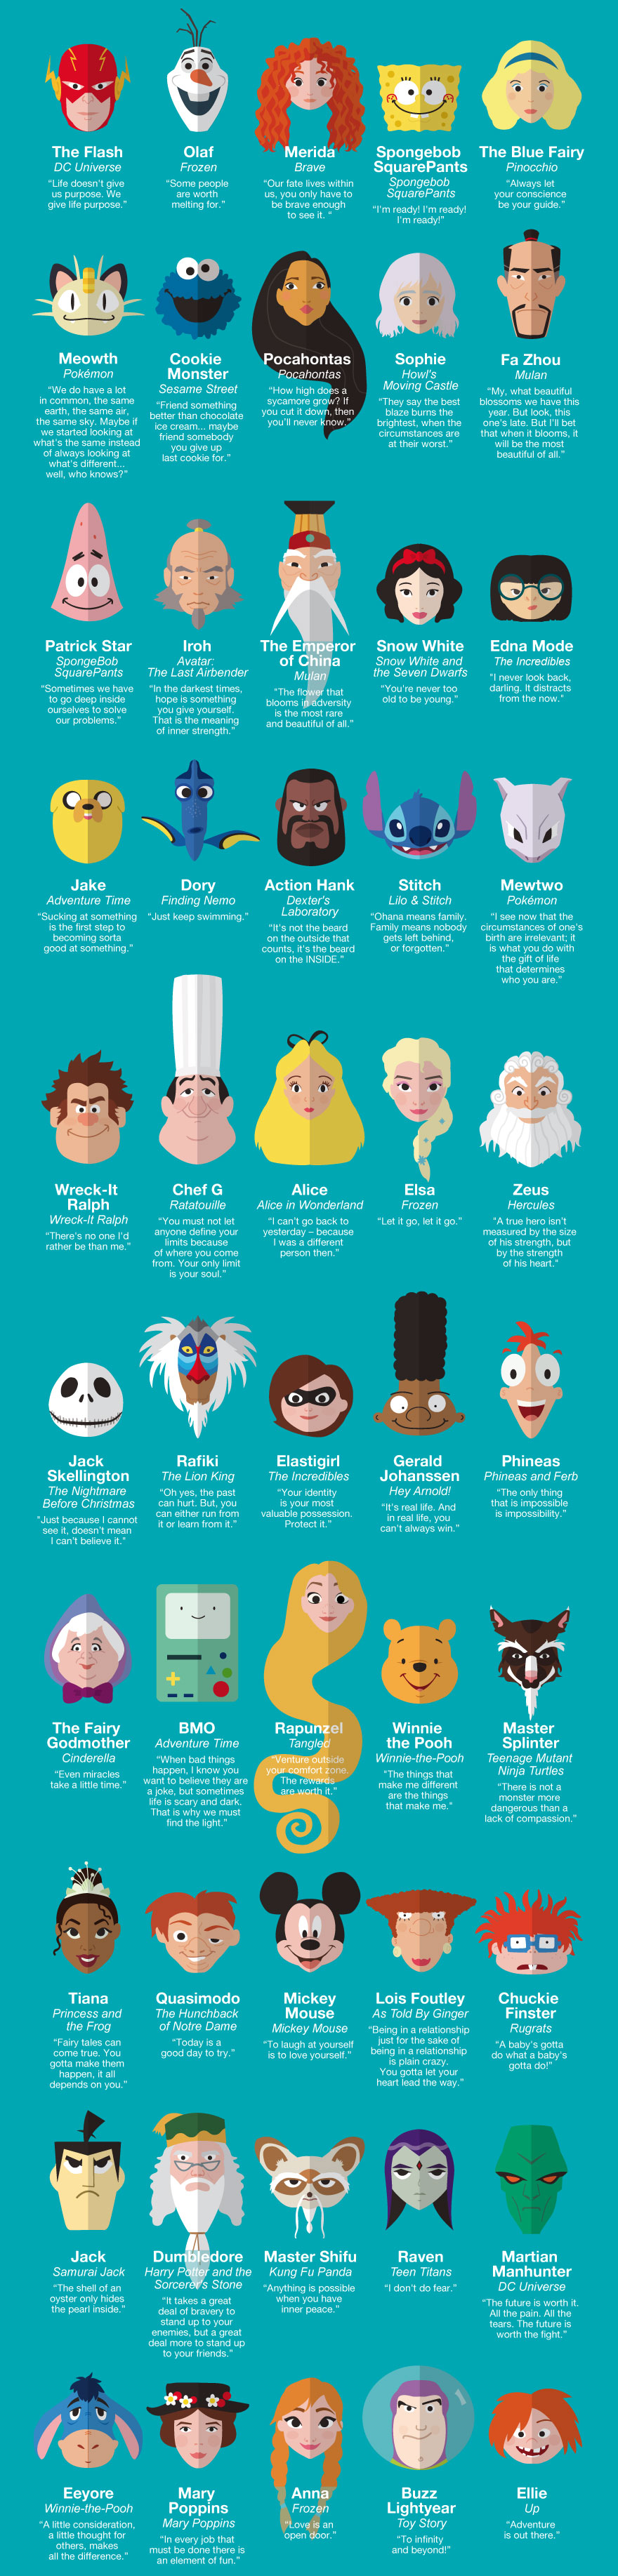 Favorite Quotes About Life 50 Inspiring Life Quotes From Famous Childhood Characters  Bored